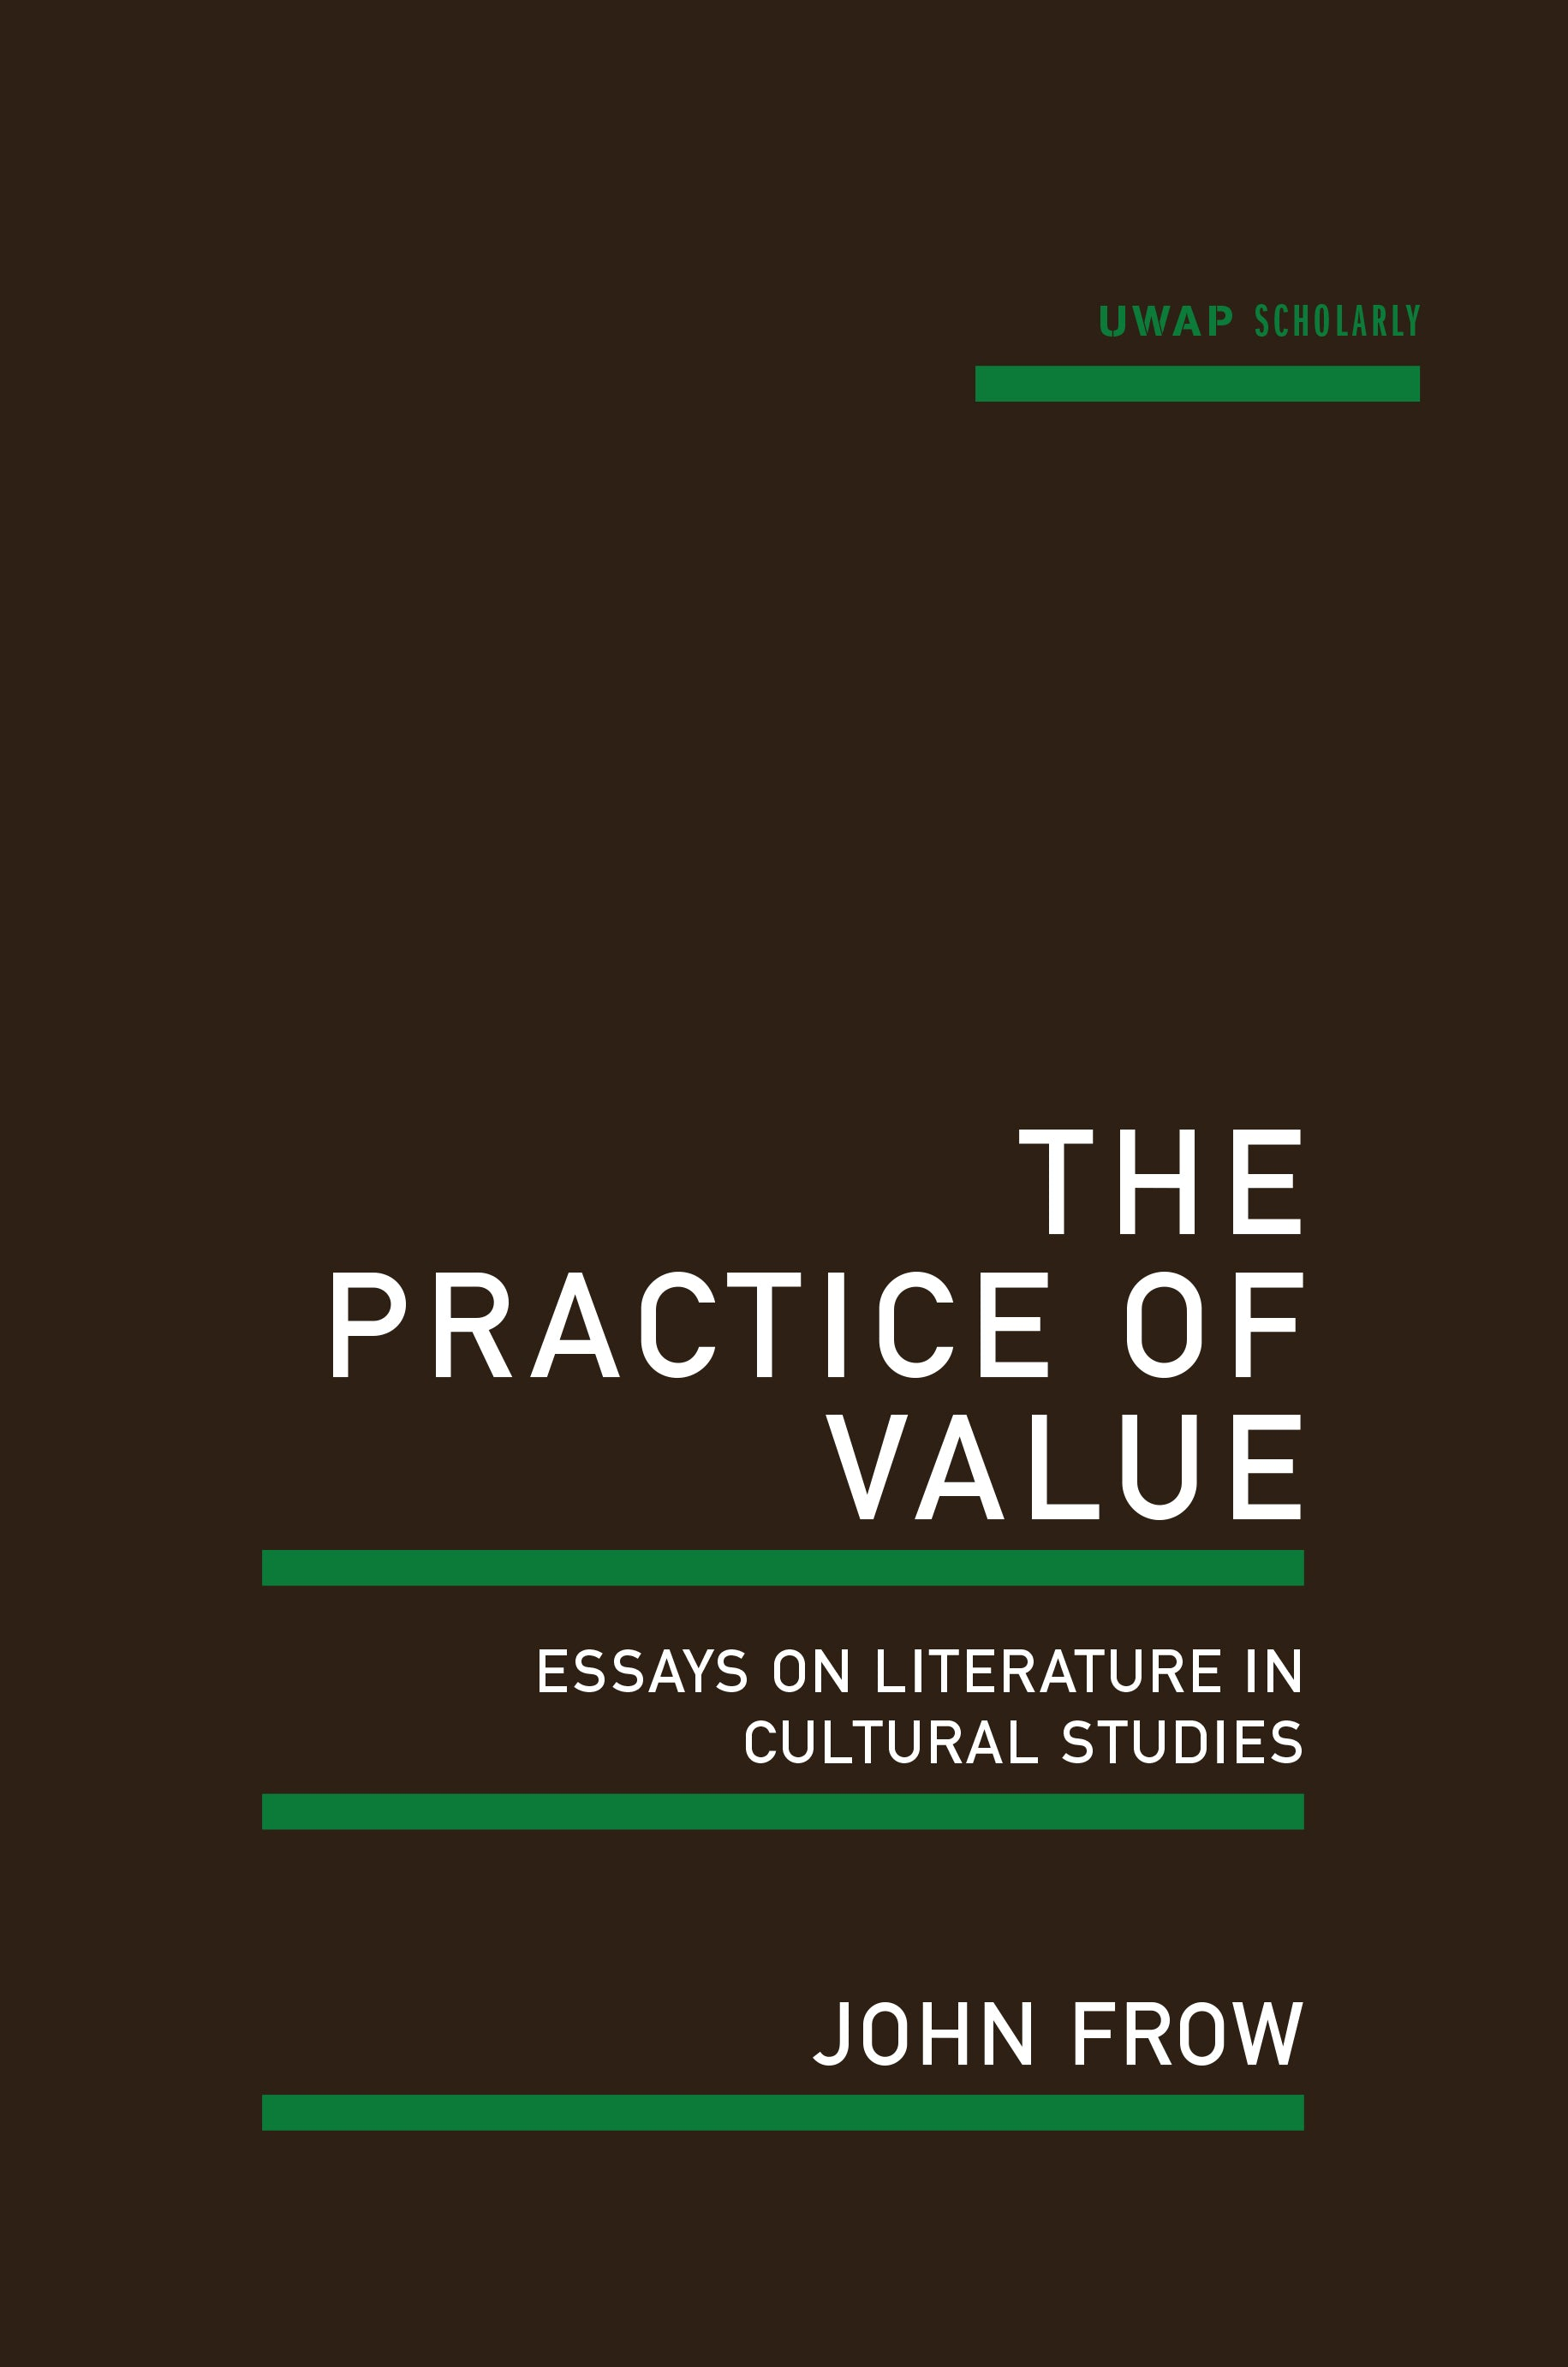 cultural essays the practice of value essays on literature in  the practice of value essays on literature in cultural studies high res cover image